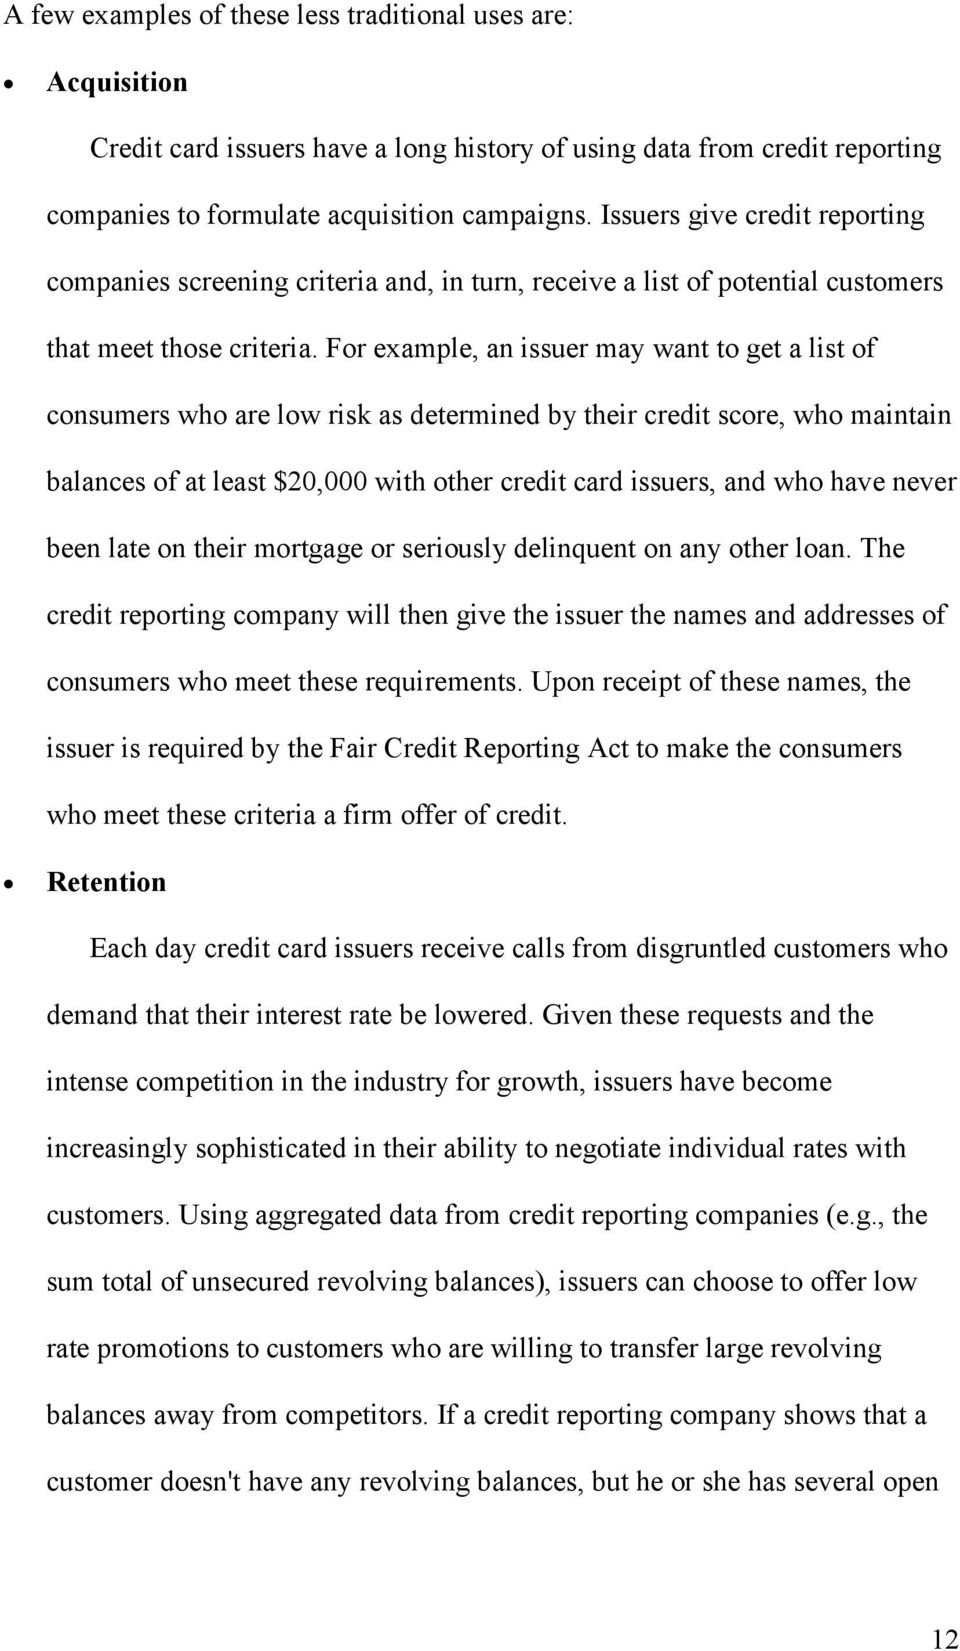 For example, an issuer may want to get a list of consumers who are low risk as determined by their credit score, who maintain balances of at least $20,000 with other credit card issuers, and who have